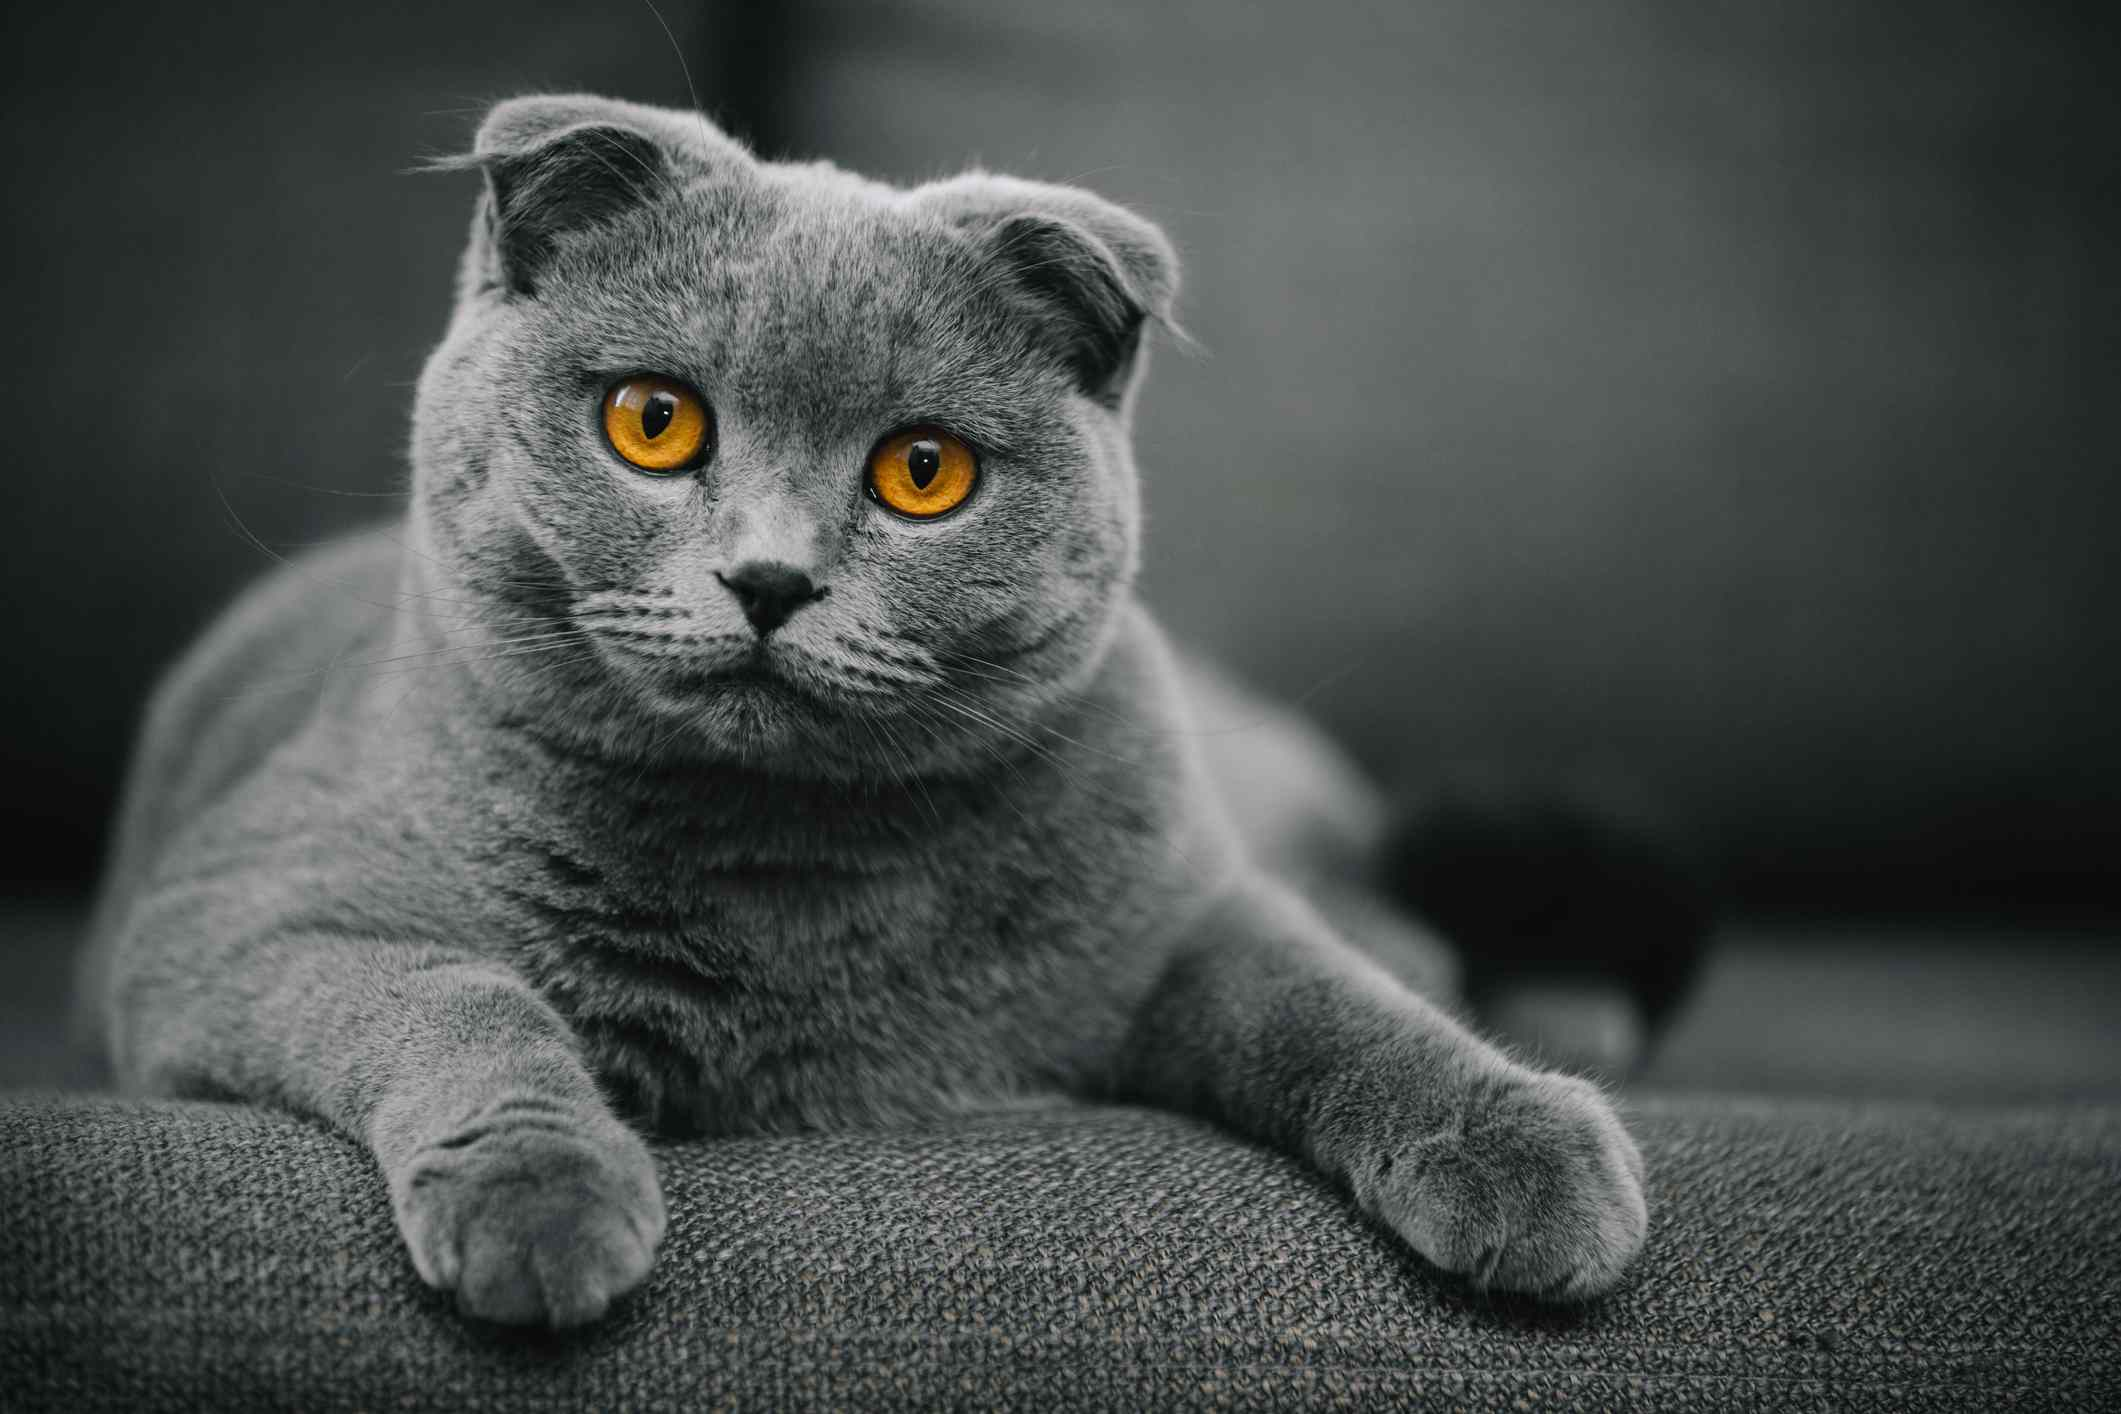 A grey Scottish Fold cat on a grey couch looking at the camera with golden eyes.